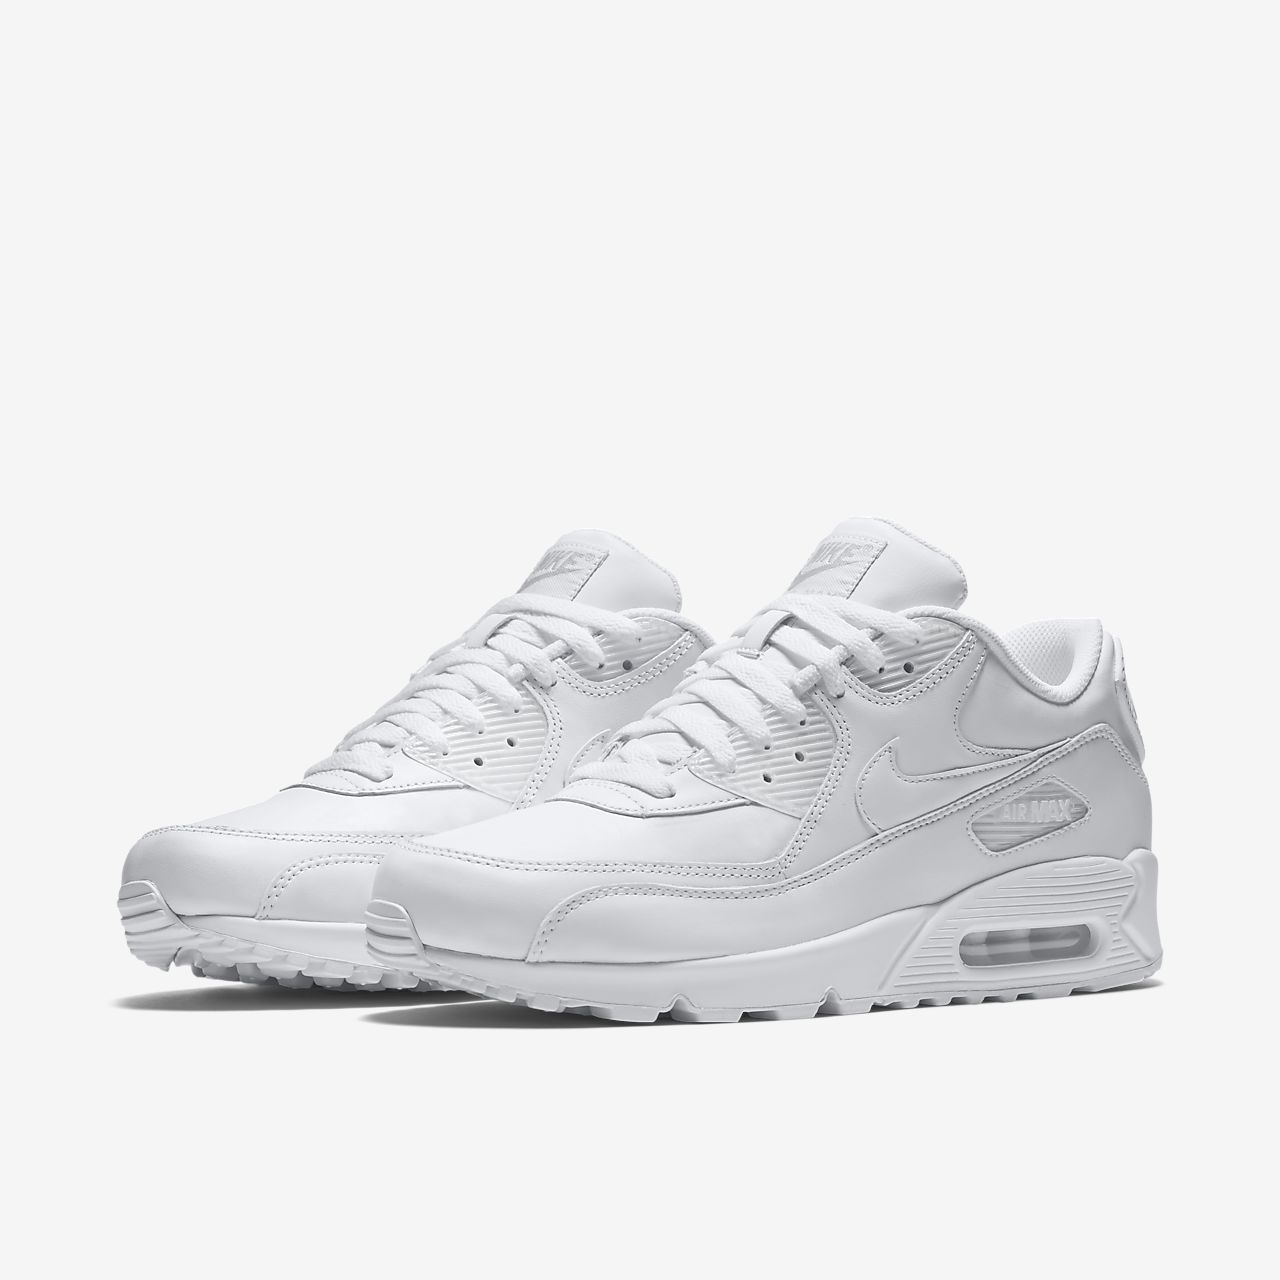 air max 90 white black